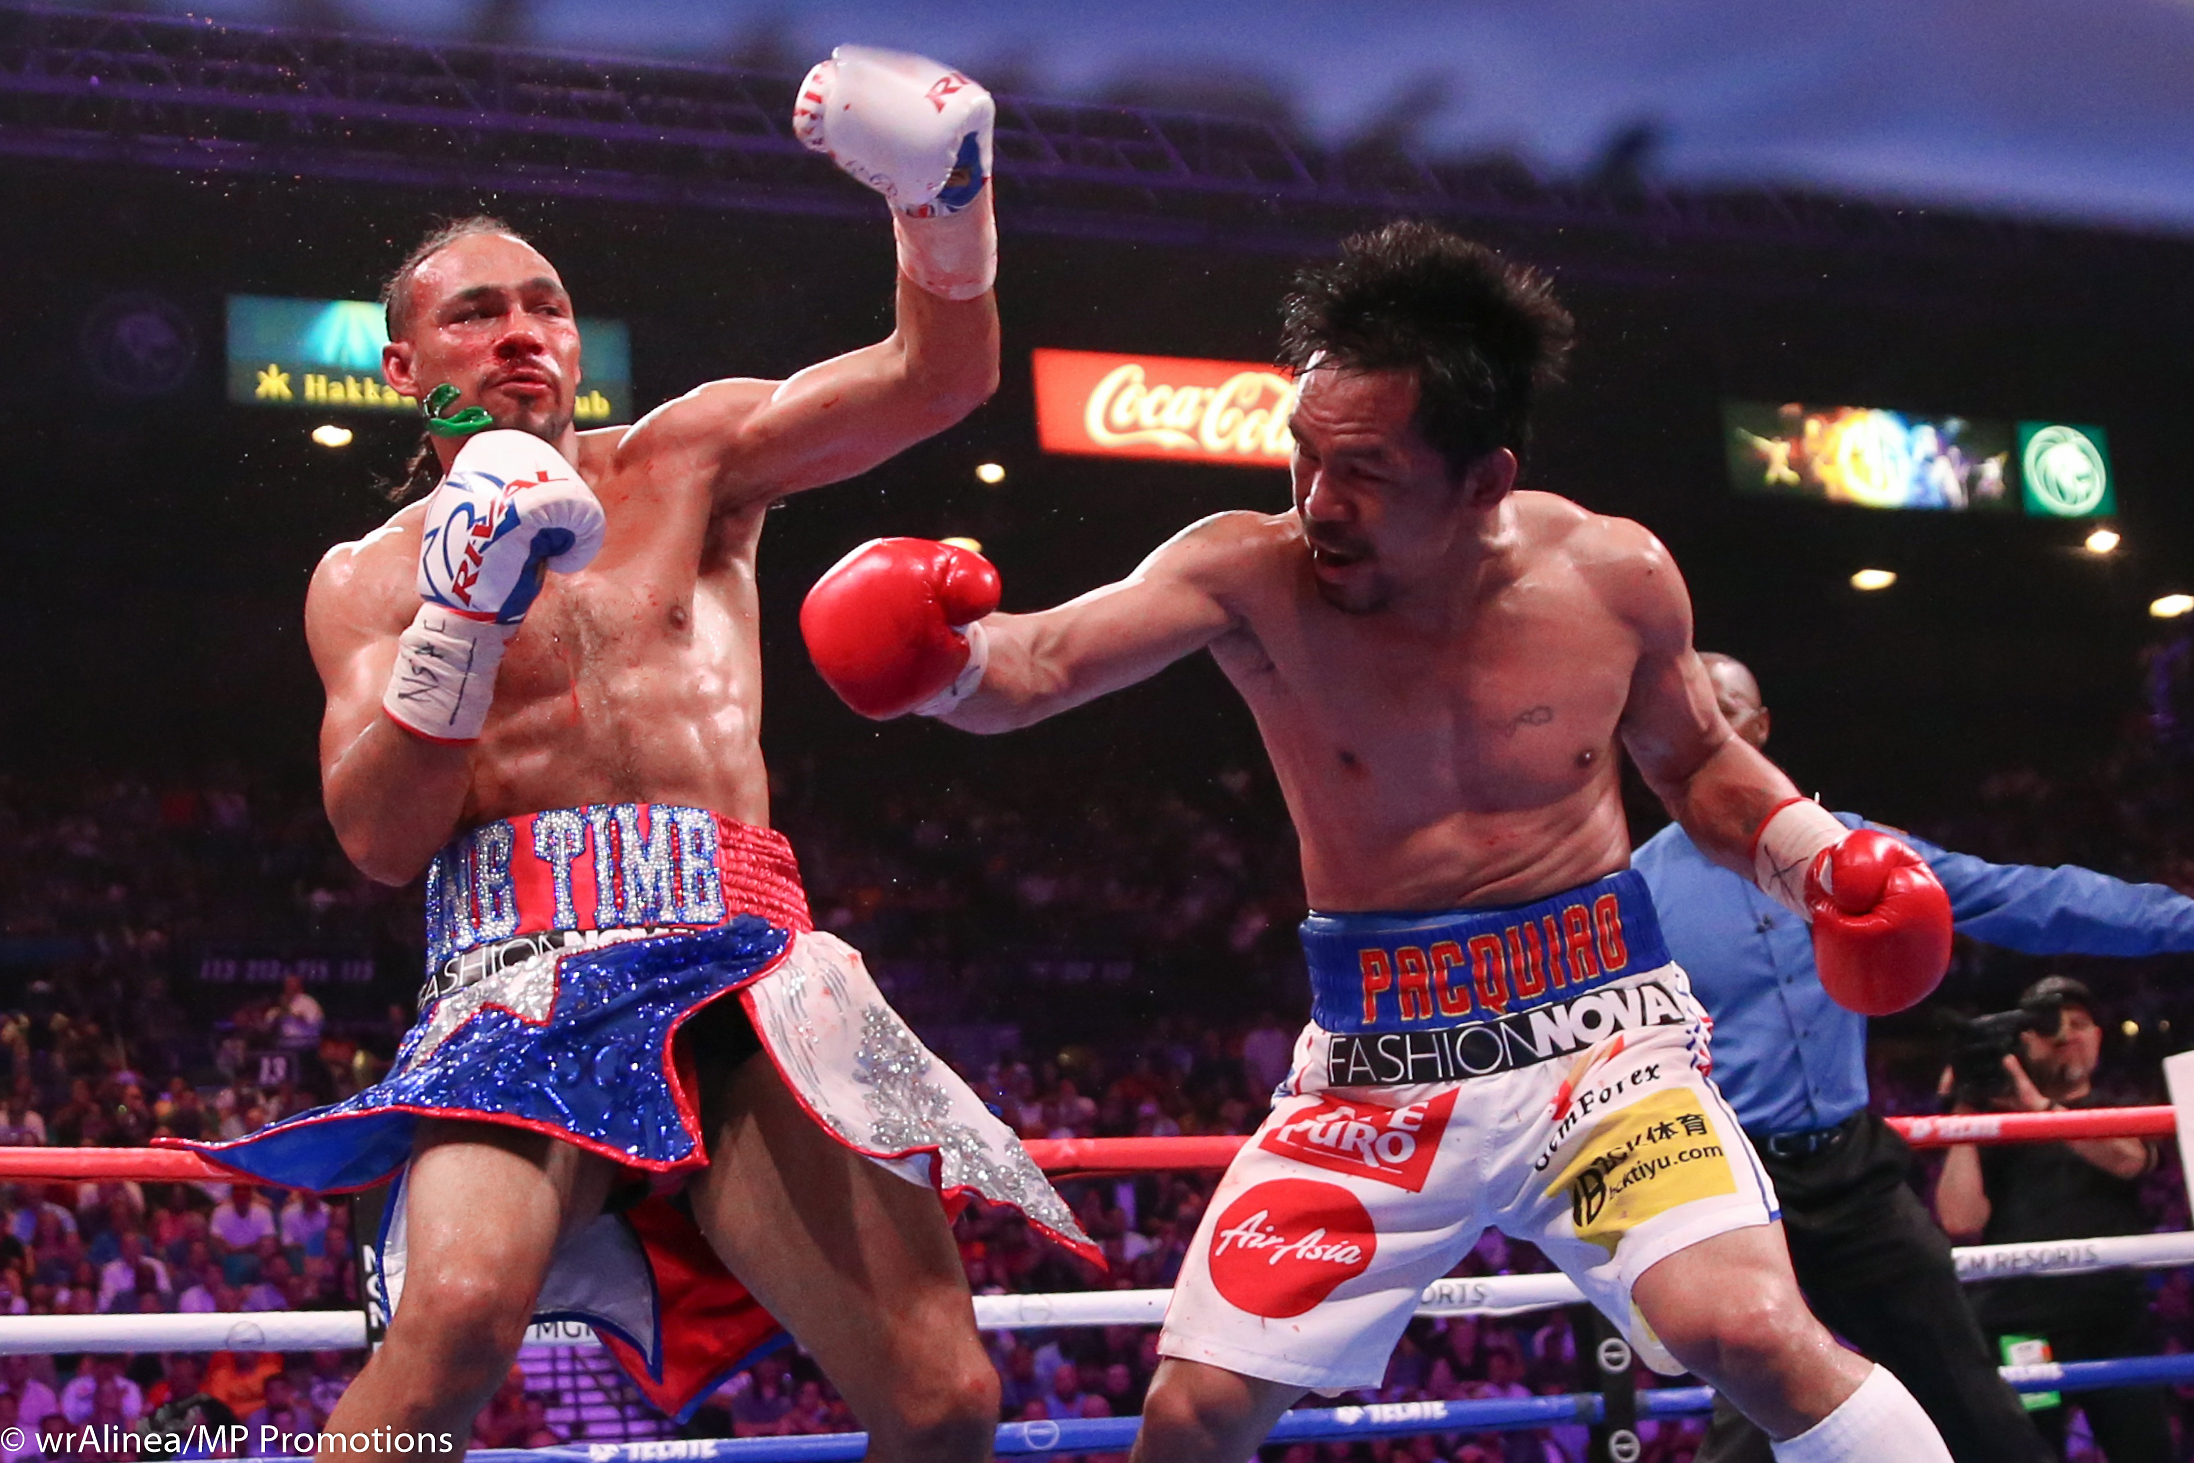 Manny Pacquiao (right) vs. Keith Thurman. Photo by Wendell Alinea/Team Pacquiao